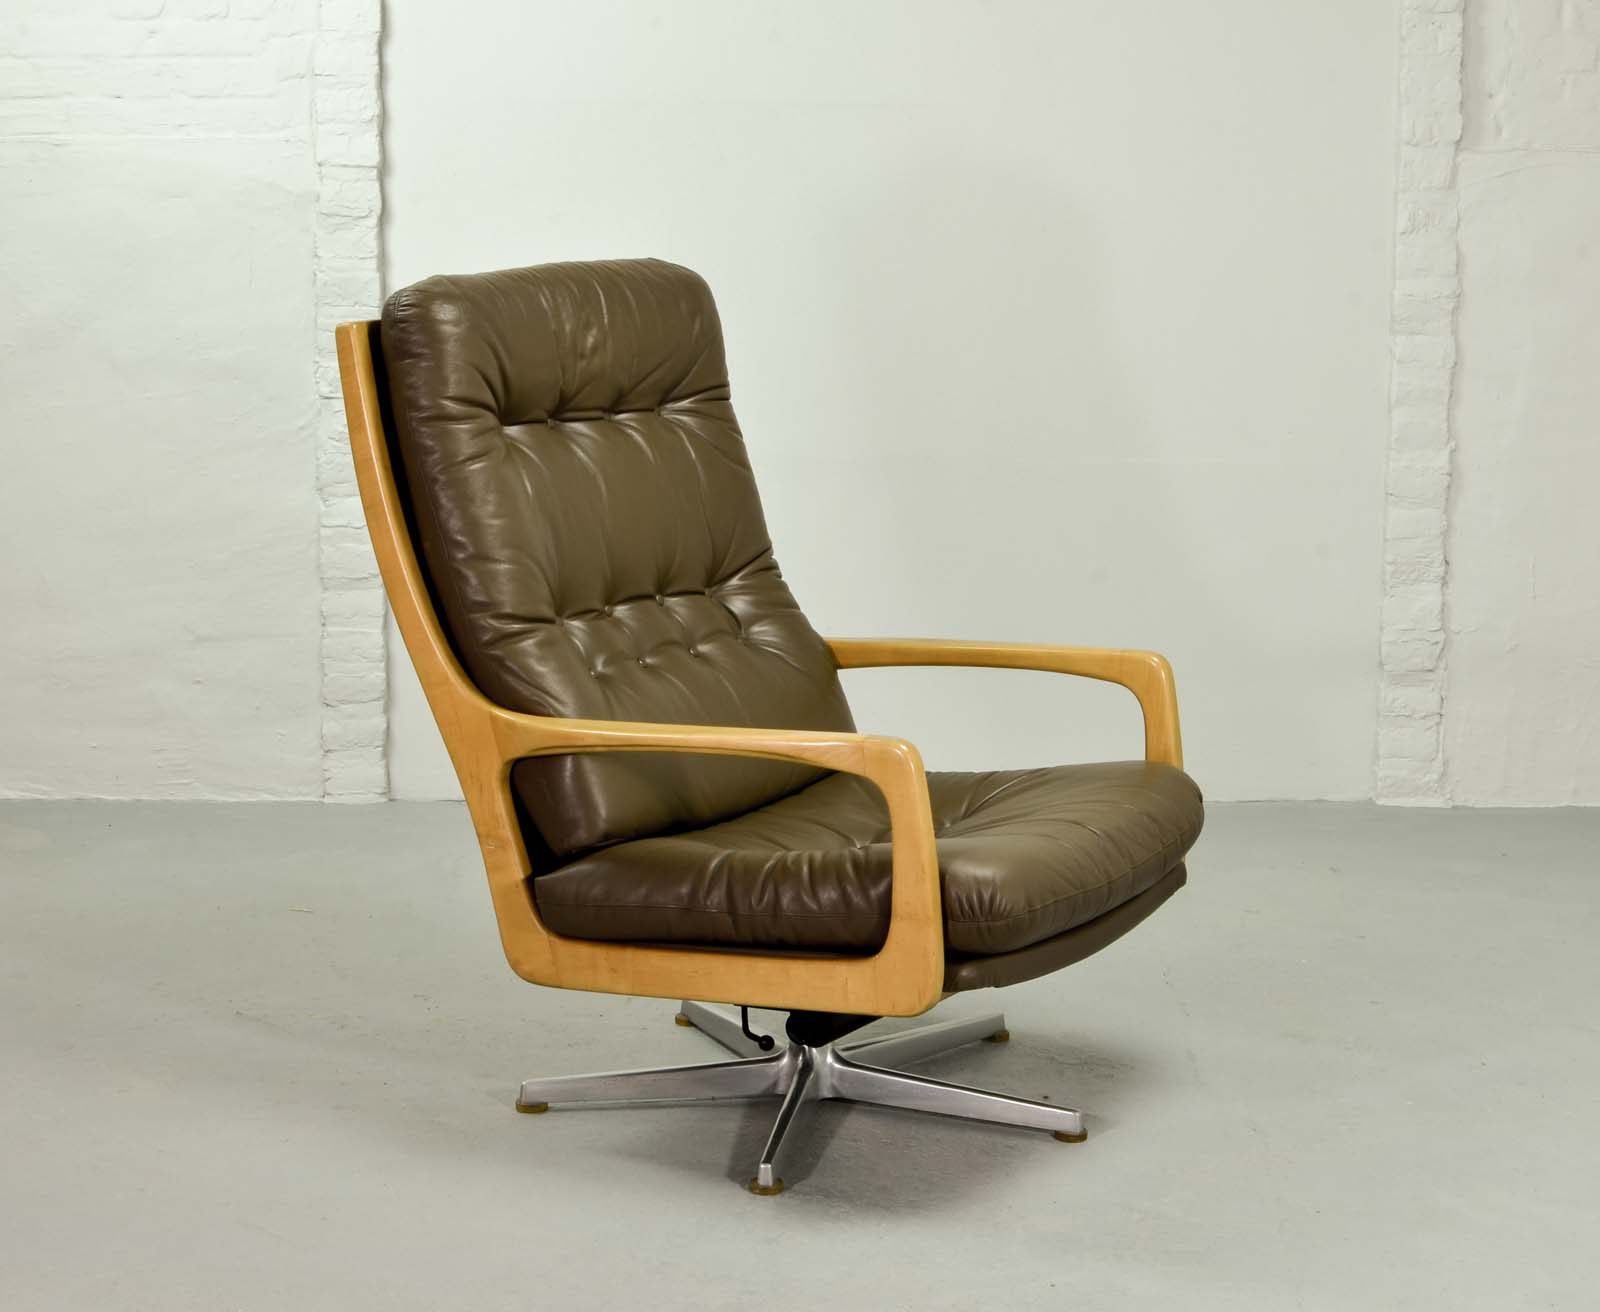 luxurious leather lounge chair designed by eugen schmidt 1970s